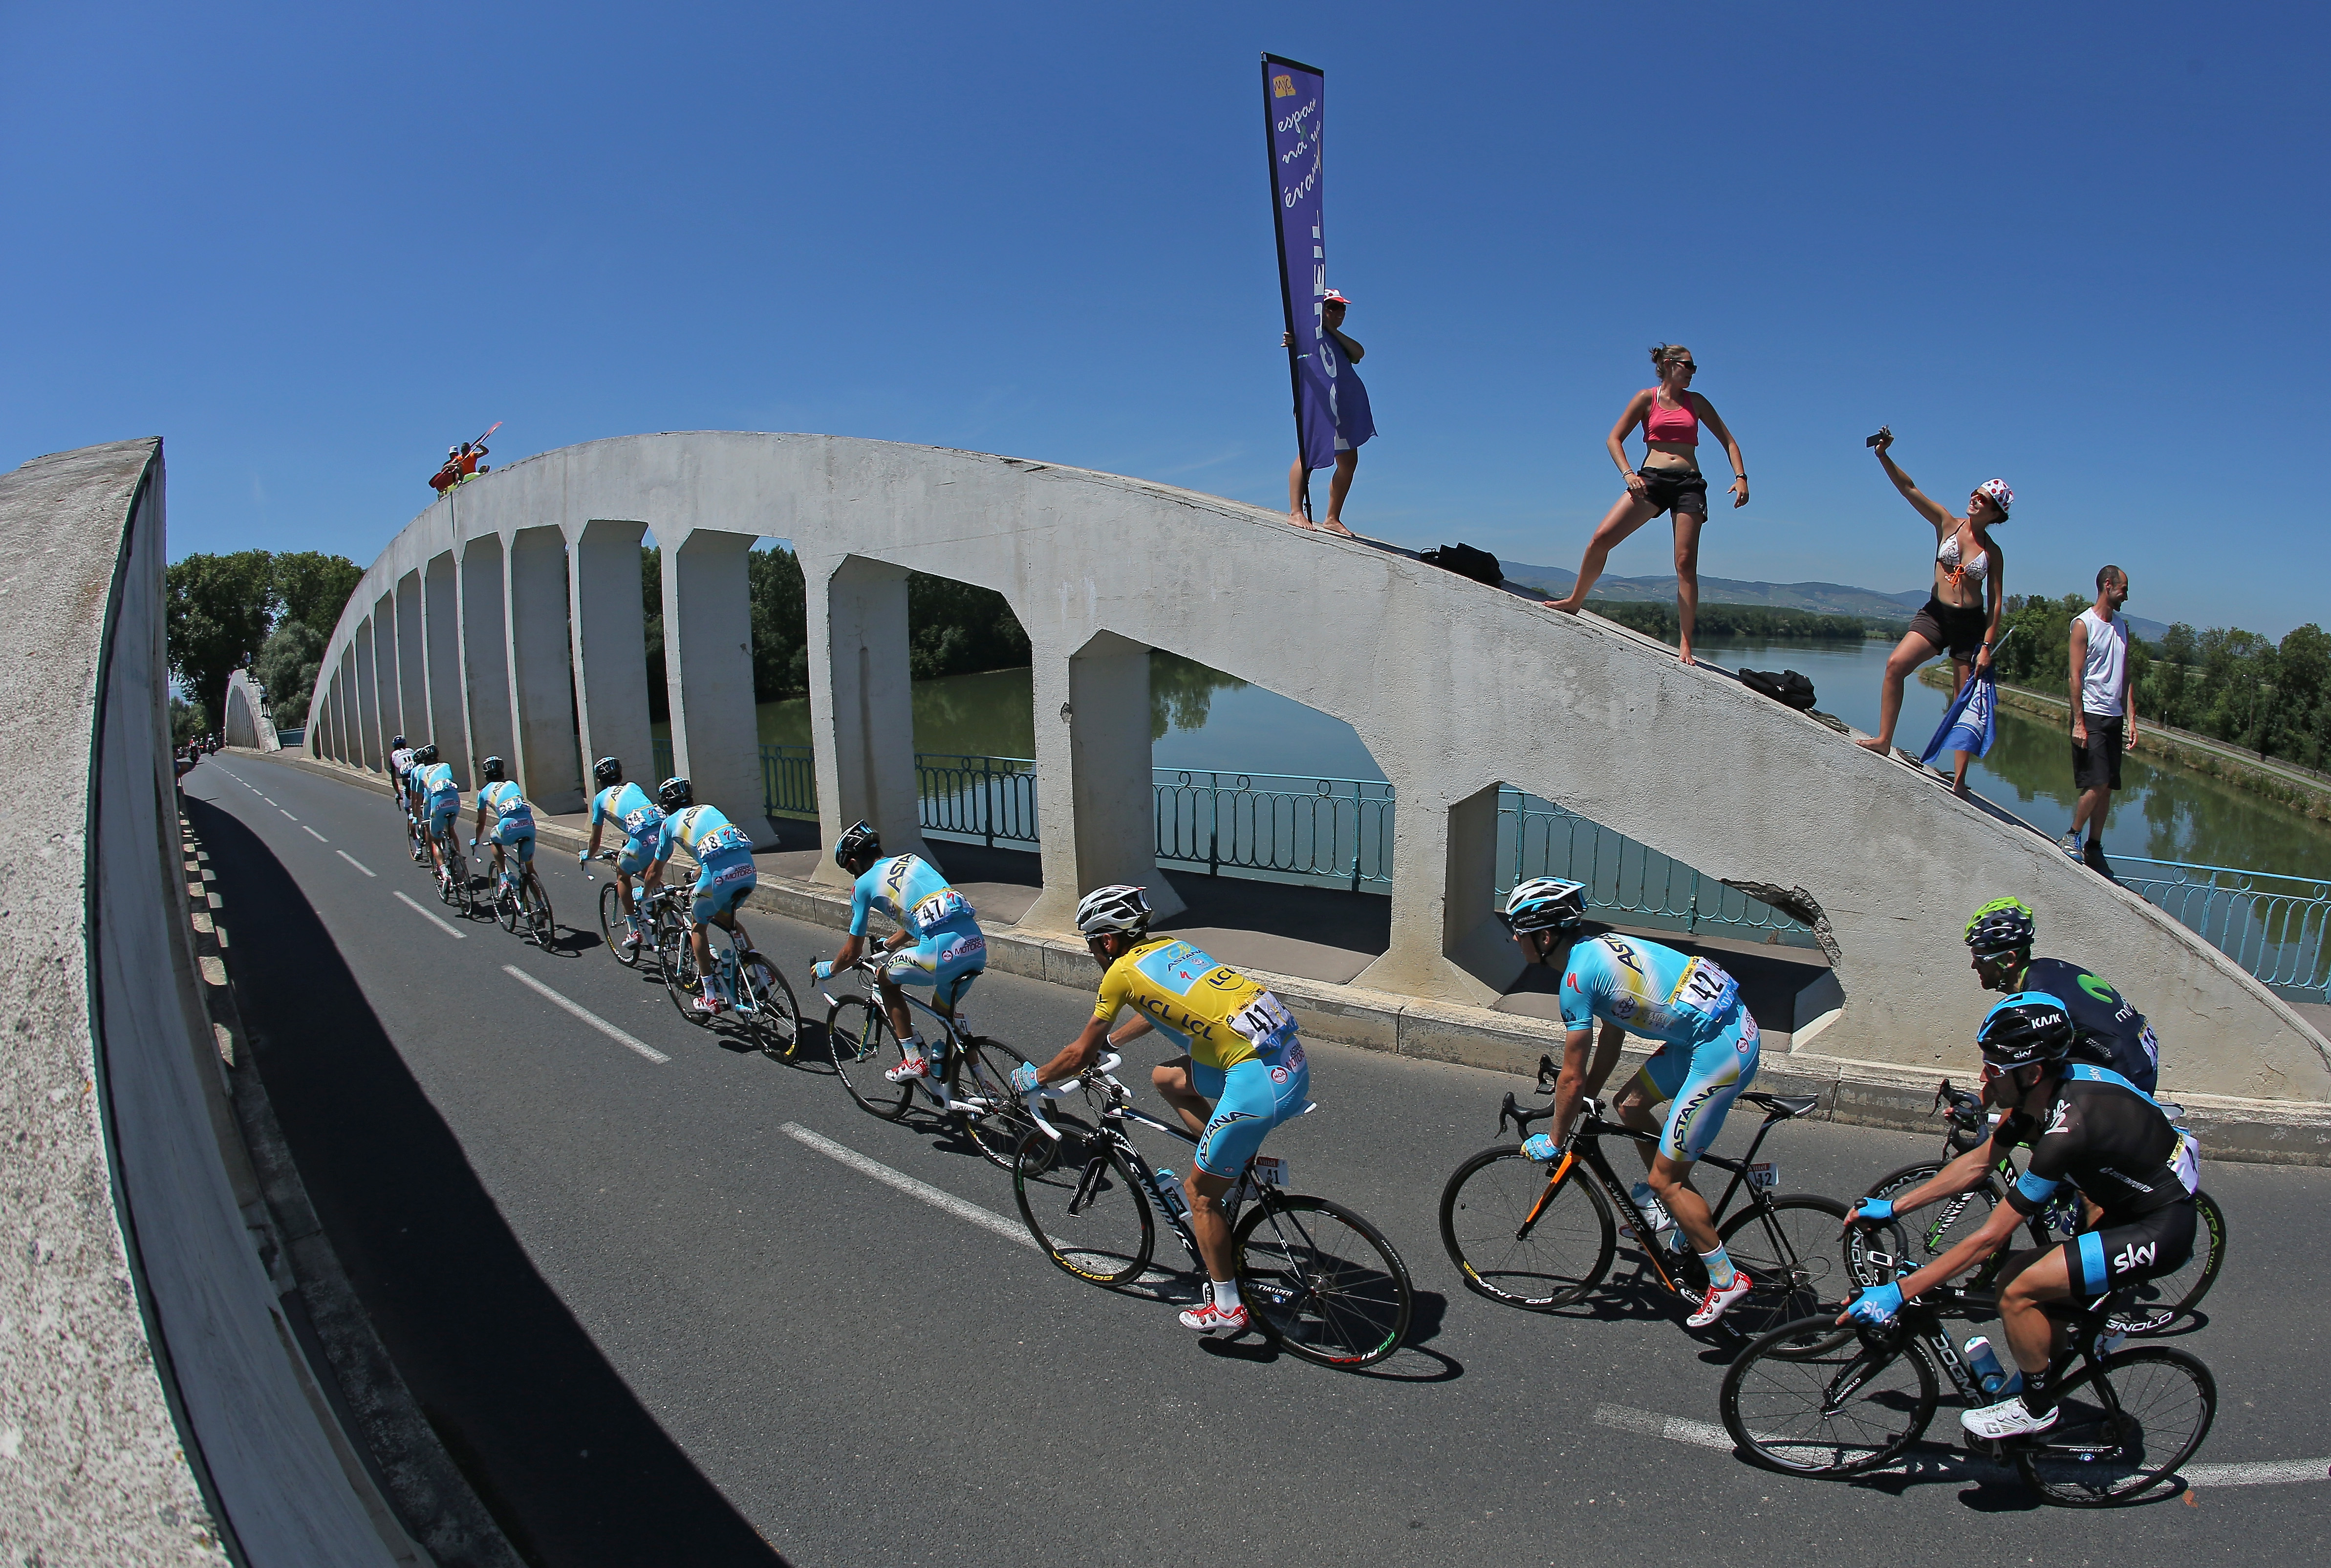 Vincenzo Nibali of Italy and the Astana Pro Team in the overall race leader's yellow jersey follows his team in the peloton over La Saone River during the twelfth stage.